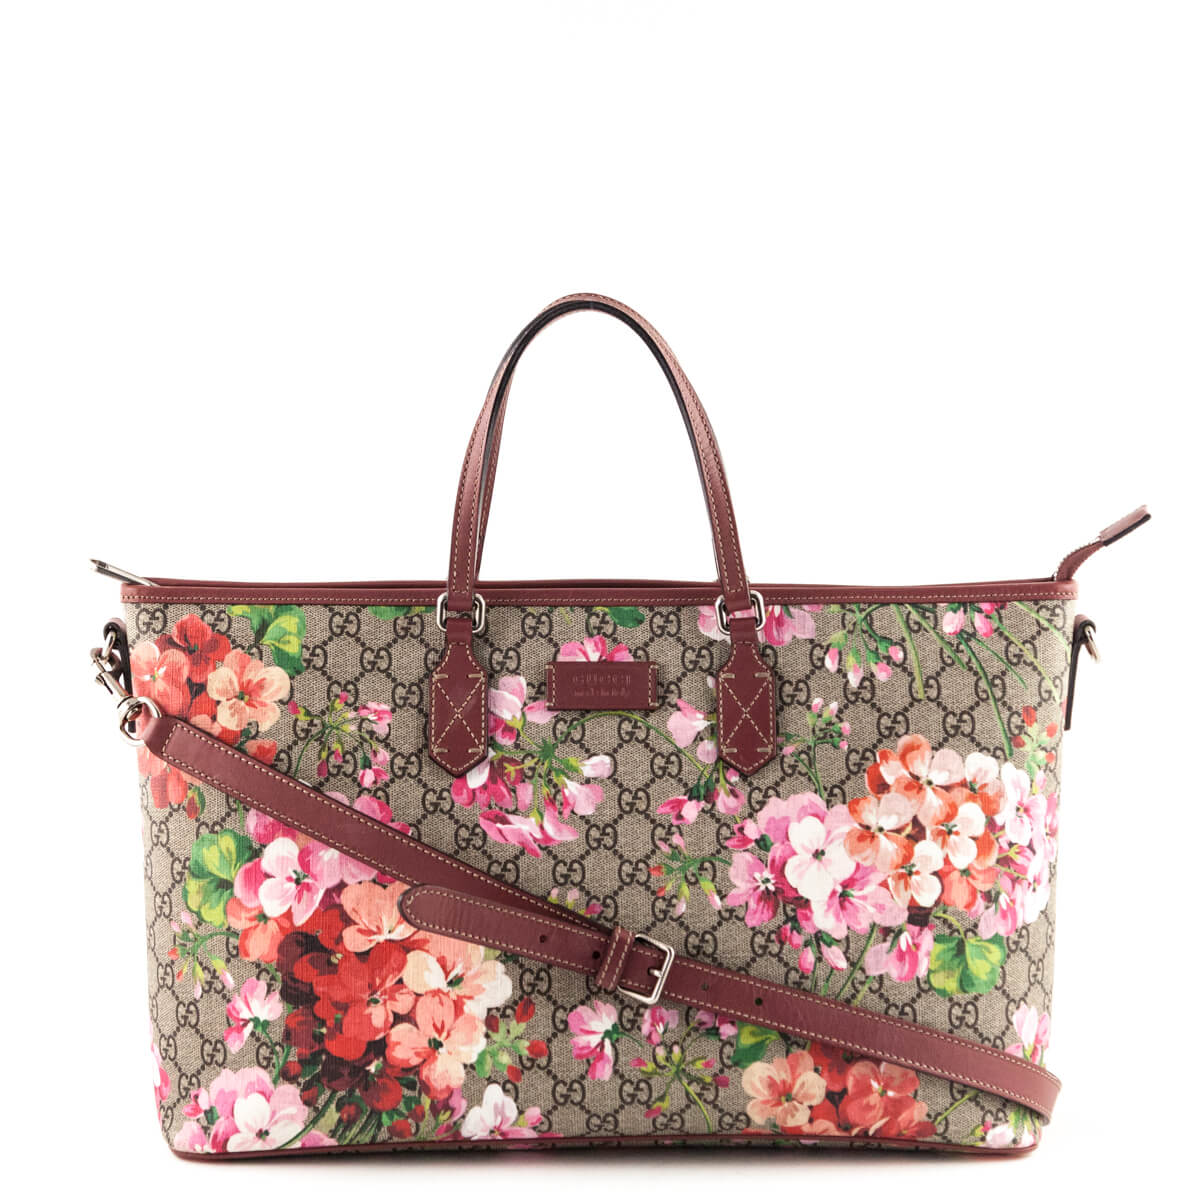 3d7836f46e01 Gucci Antique Rose Monogram Soft GG Blooms Tote - LOVE that BAG - Preowned  Authentic Designer ...